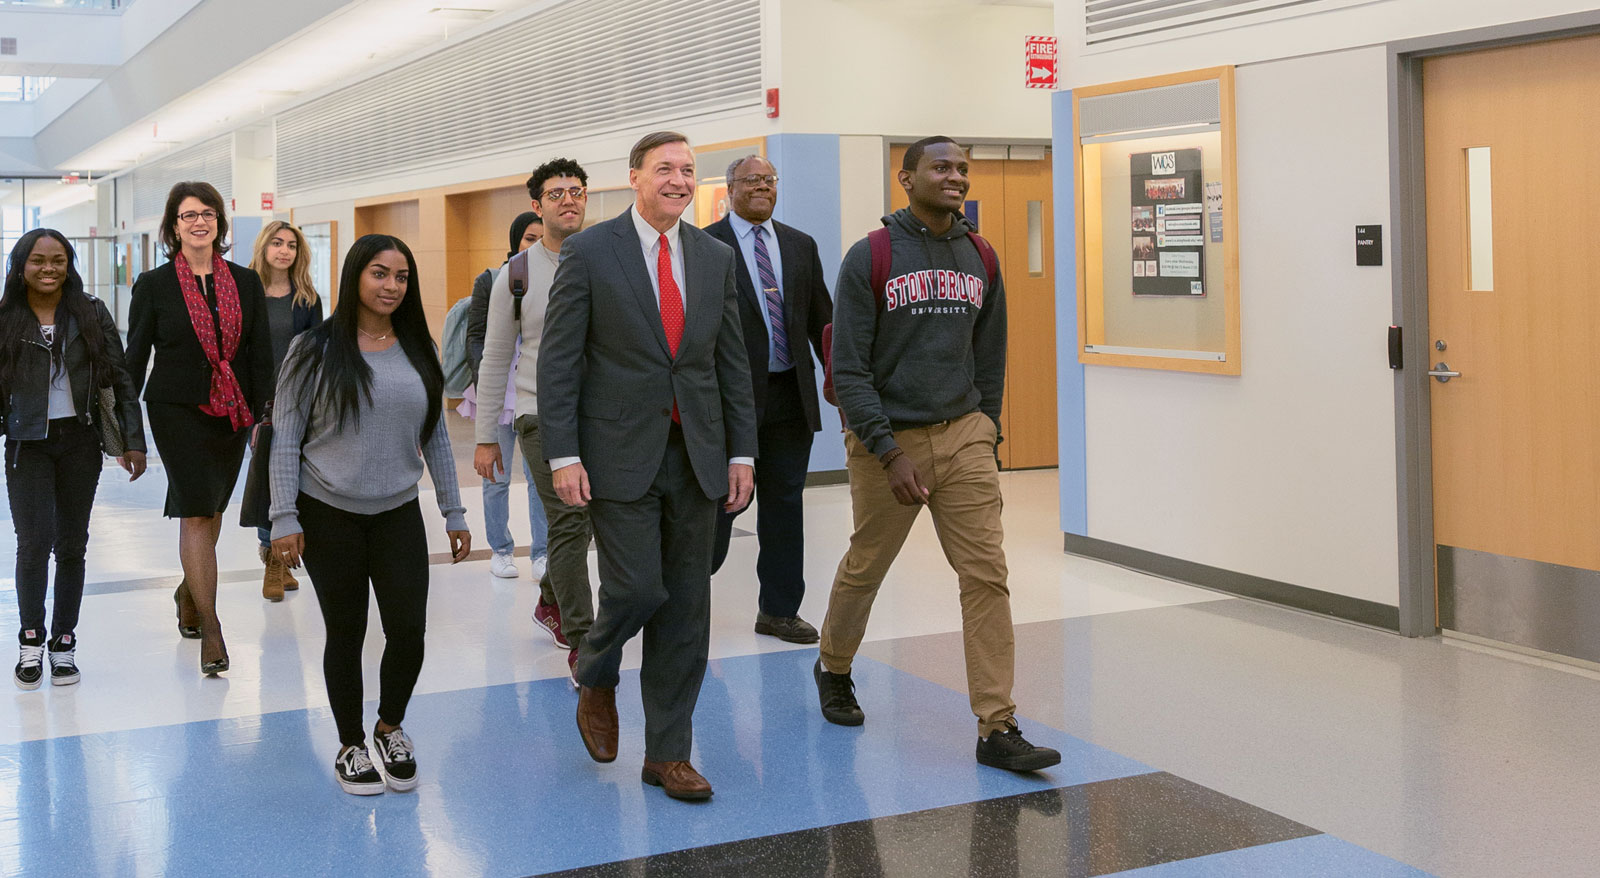 At Stony Brook University, a committed campus community, led by President Samuel L. Stanley Jr. (front) and faculty and staff like Provost's Scholar for Diversity and Innovation David Ferguson and Career Center Director Marianna Savoca (also pictured), is helping economically disadvantaged students move up the socioeconomic ladder.